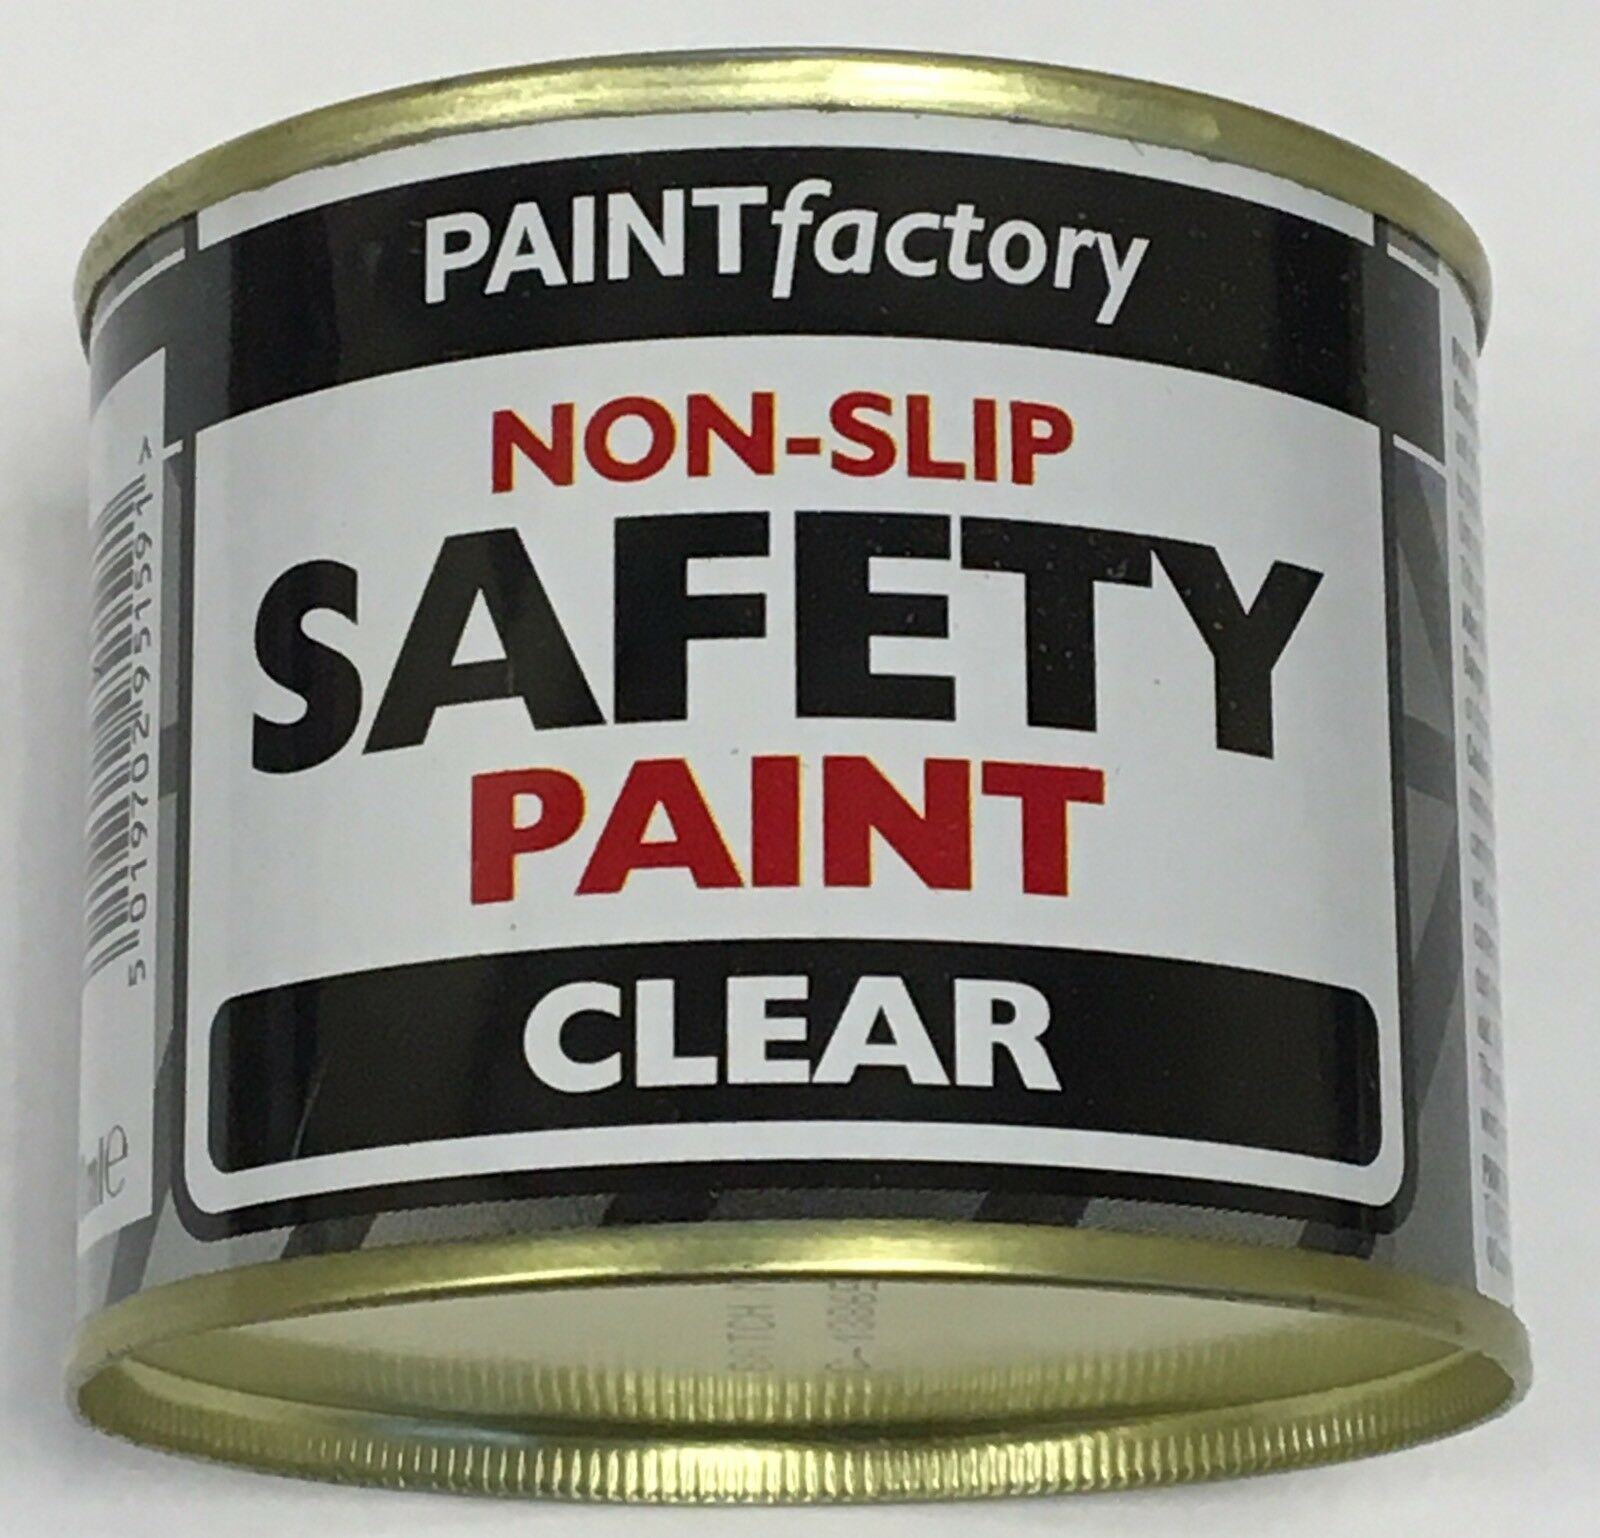 1 X Clear Non Slip Safety Paint High Performance Tough Durable 170ml